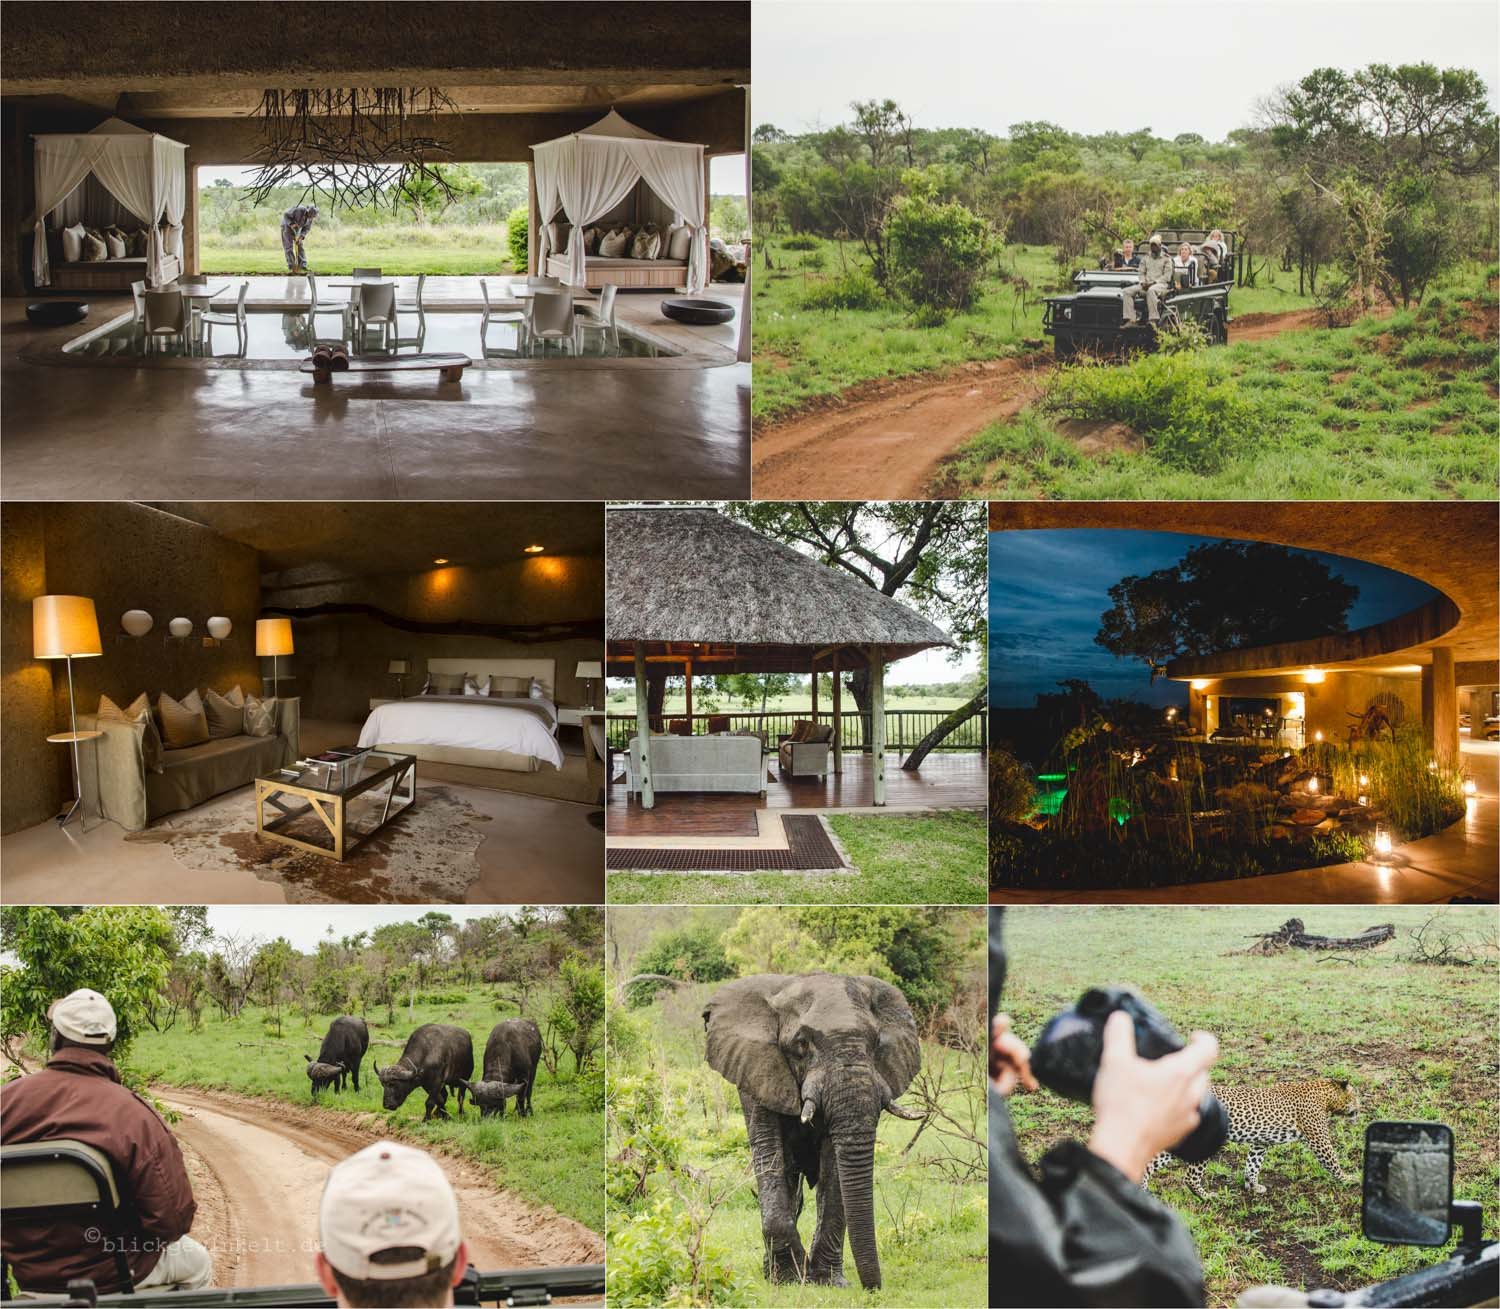 Sabi Sabi Lodges, Bildercollage: Auf Safari in Südafrika